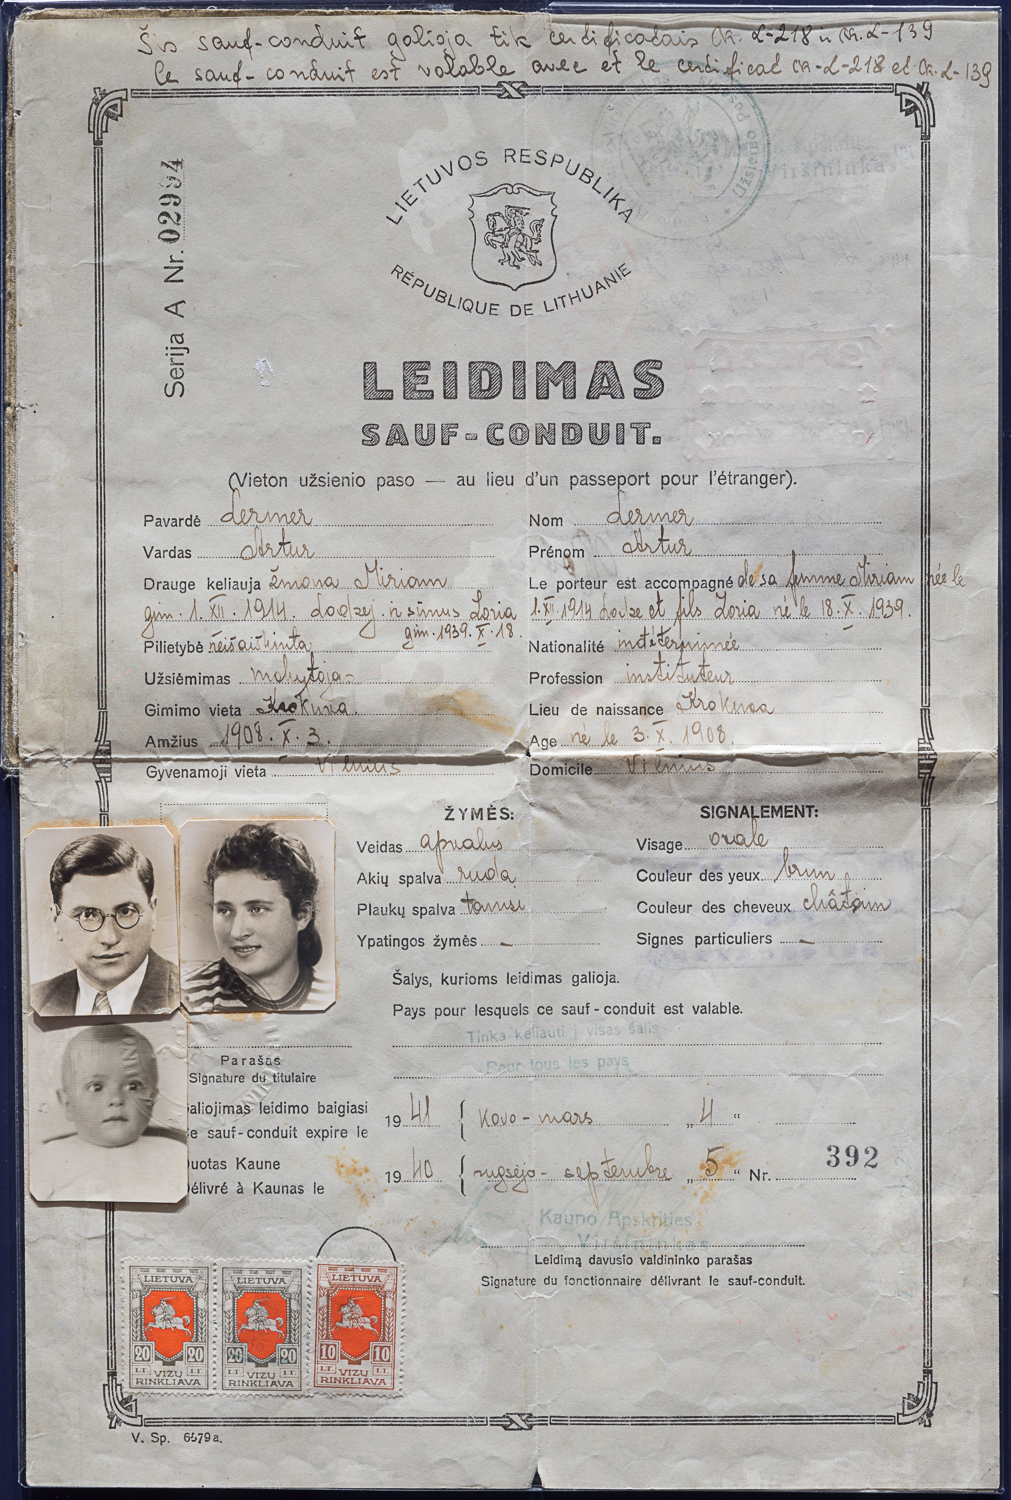 This Lithuanian safe-conduct visa was delivered on September 5, 1940, for Arthur Lermer, his wife Miriam and their son Zoria.